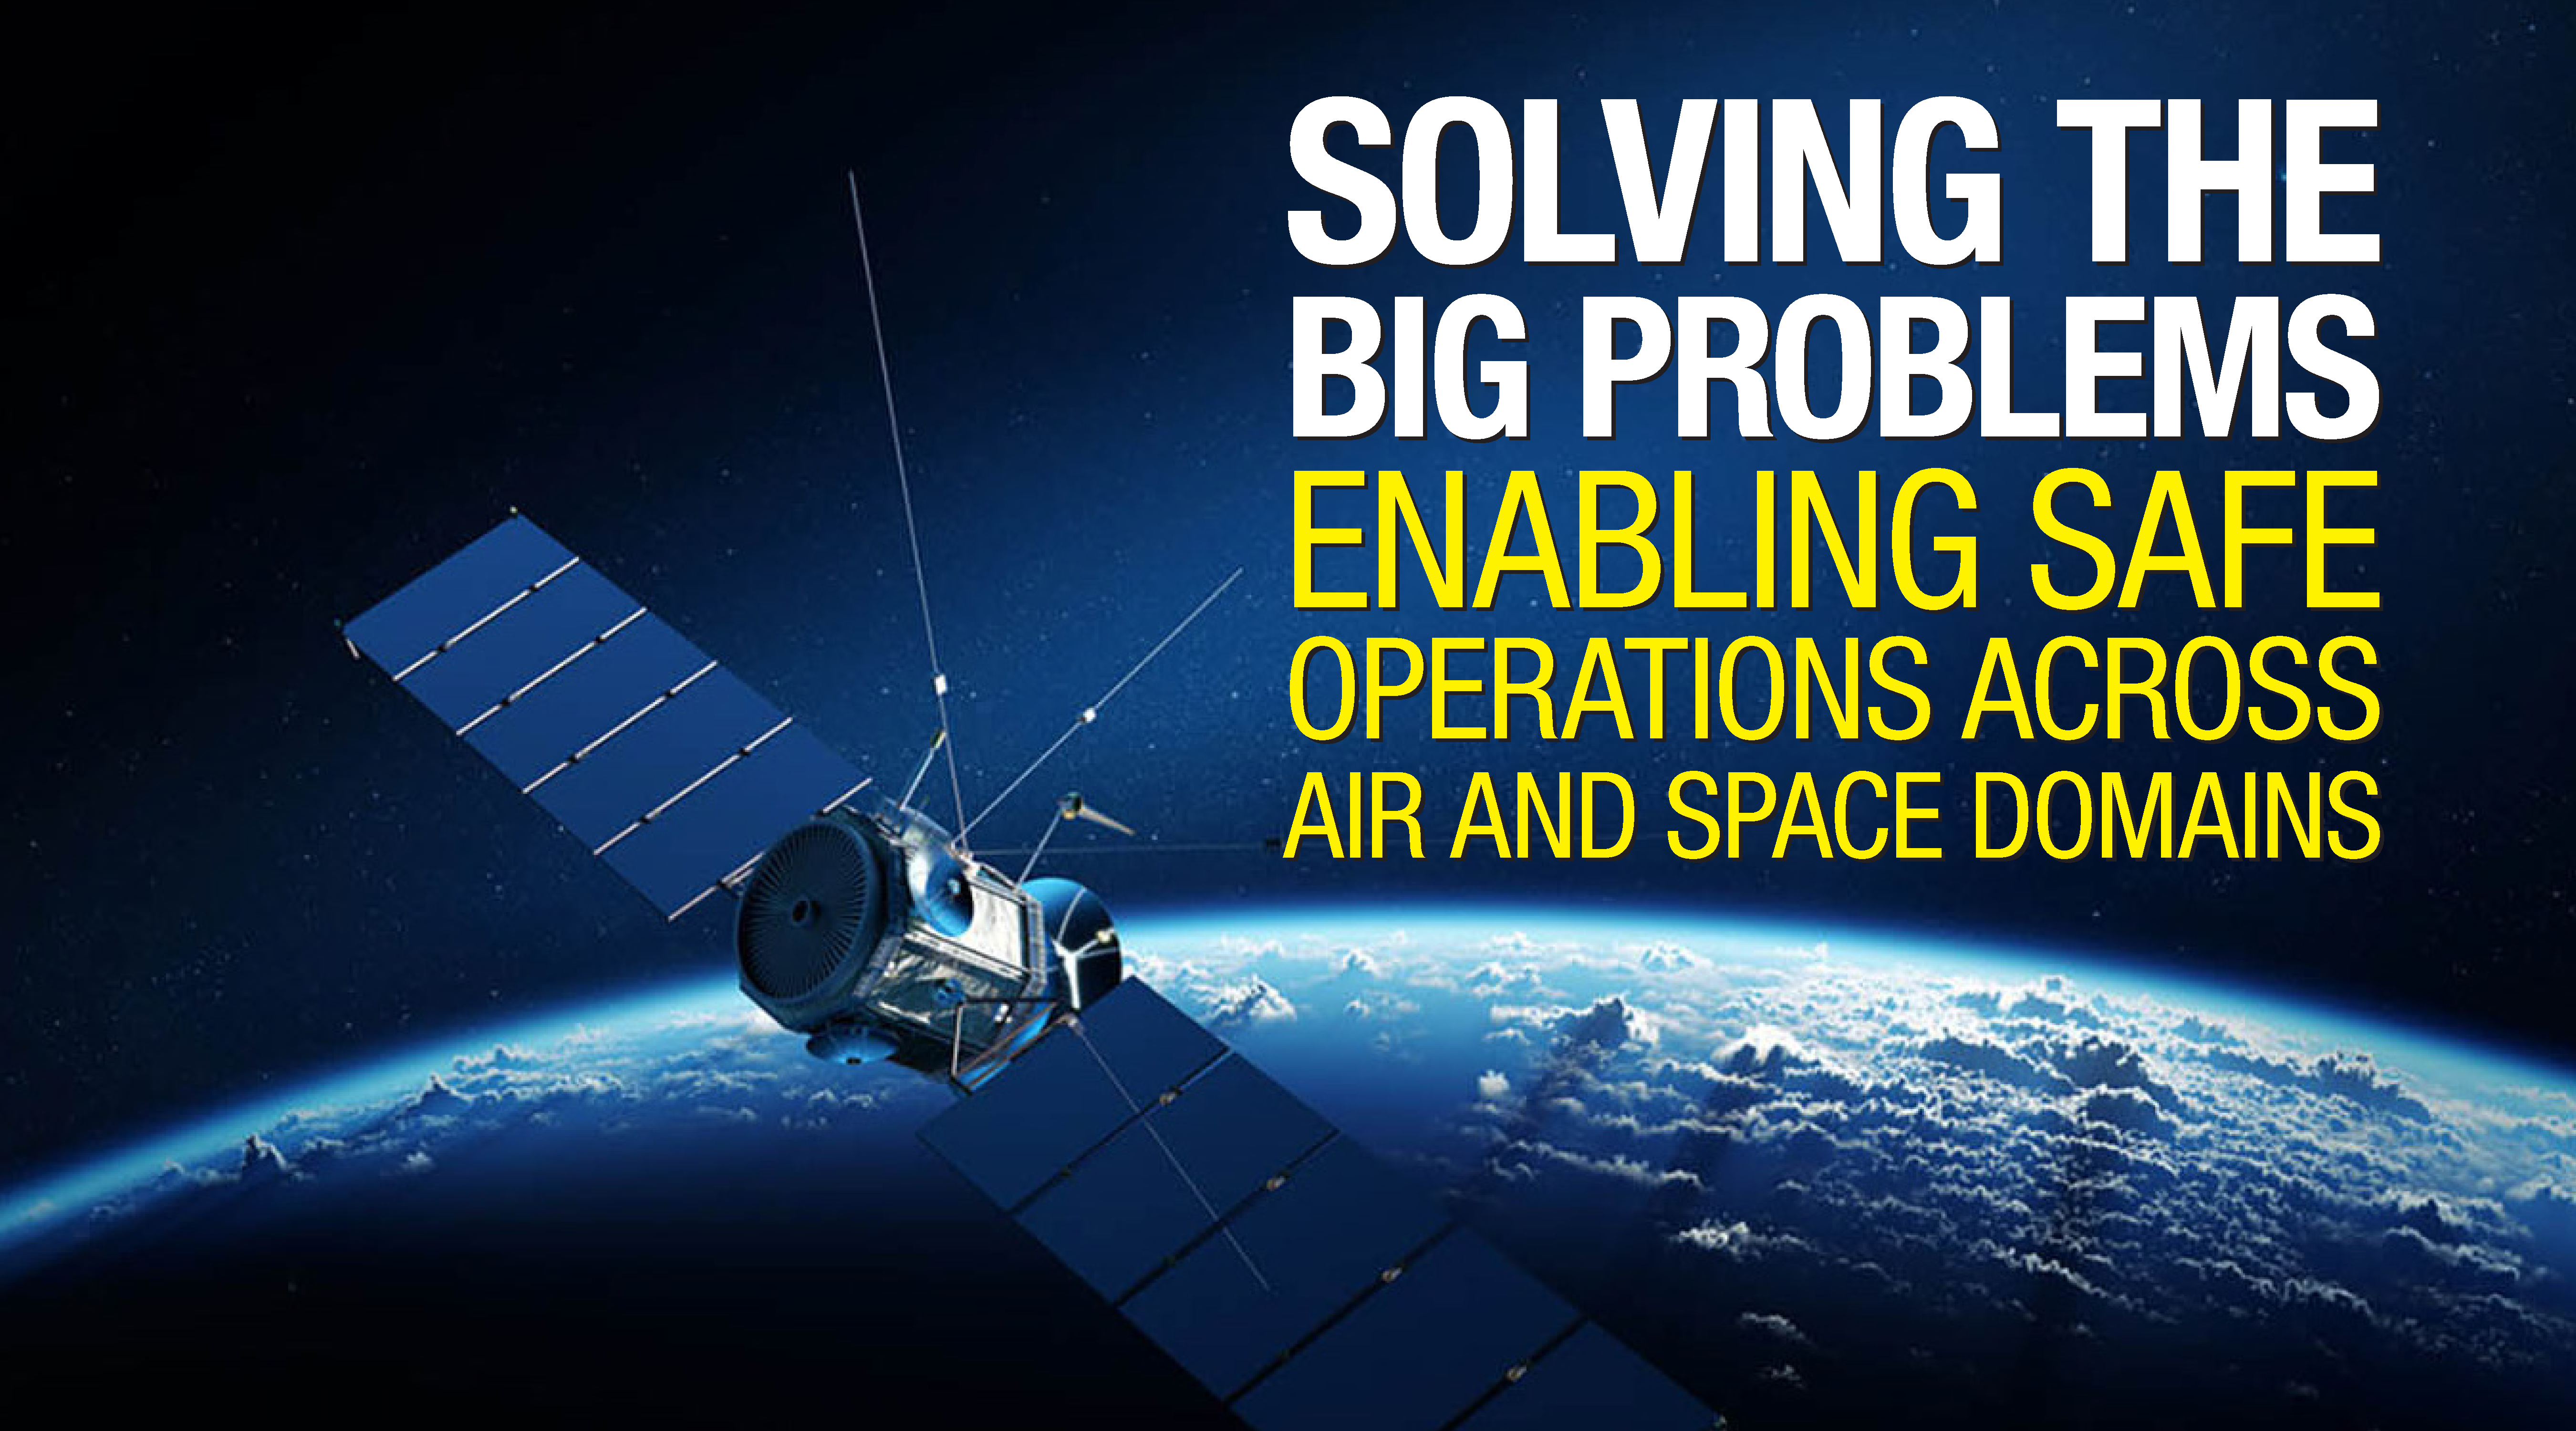 Solving the big problems, enabling safe operations across air and space domains